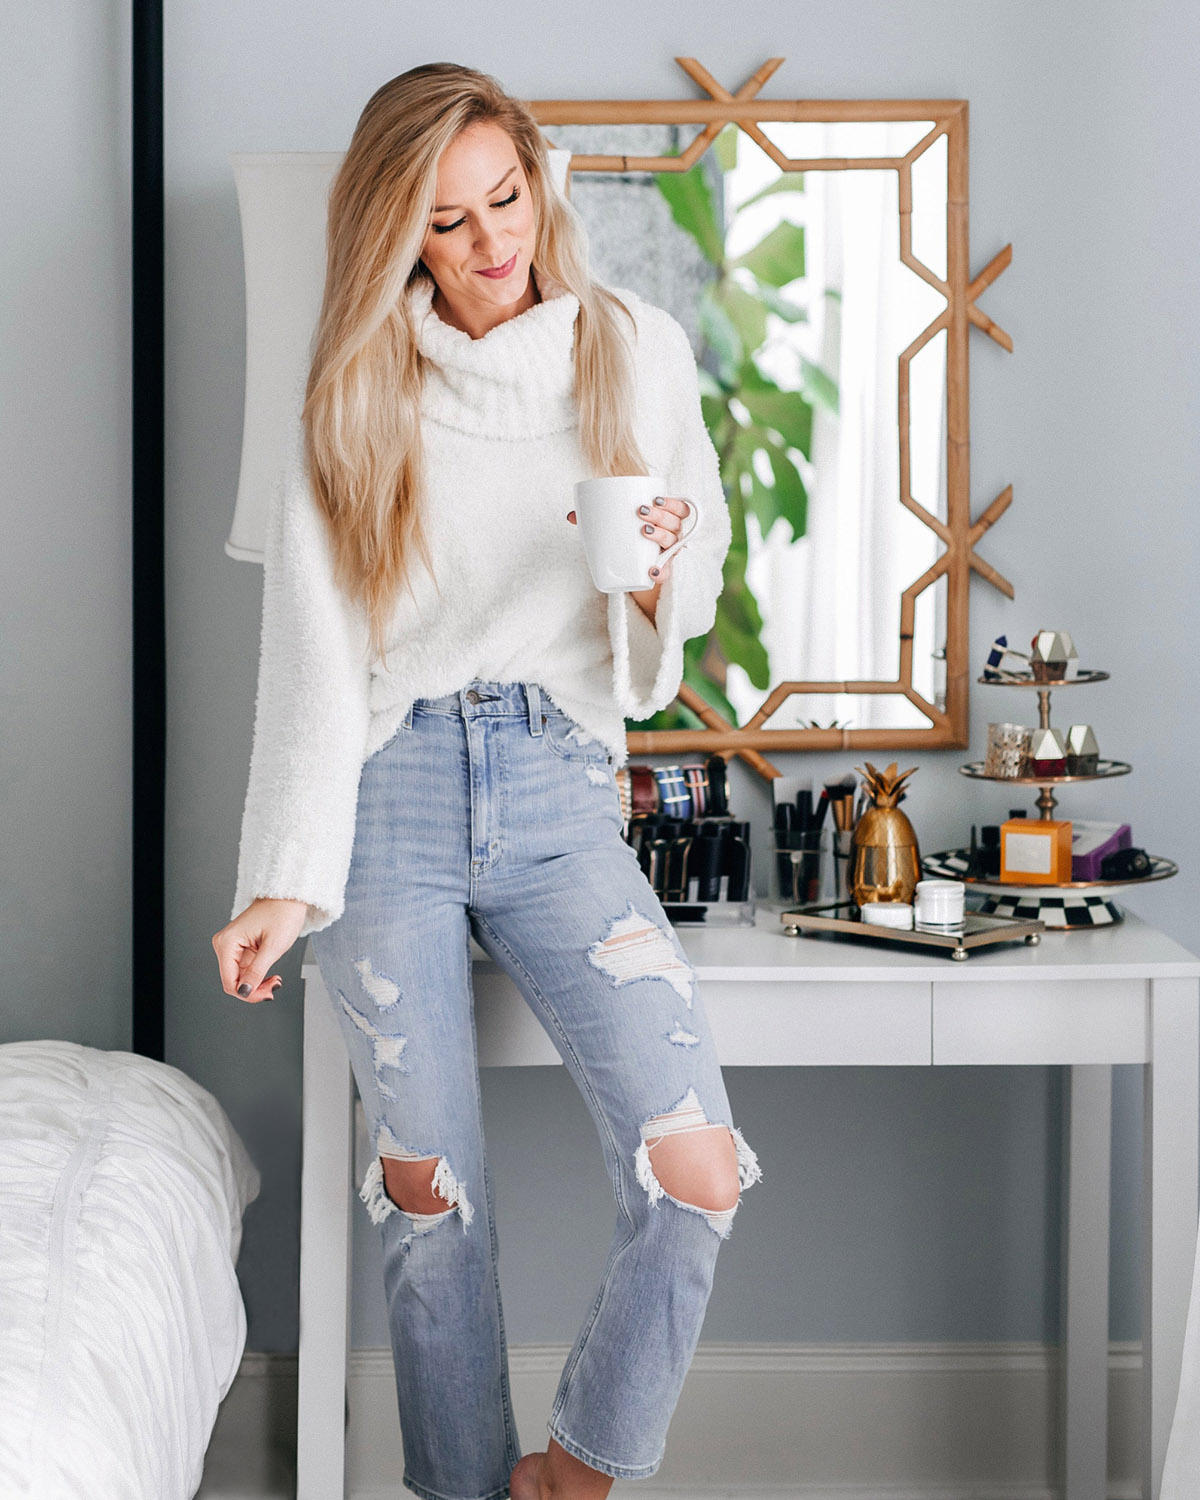 Serena and Lily Bamboo Mirror | Abercrombie cropped distressed jeans